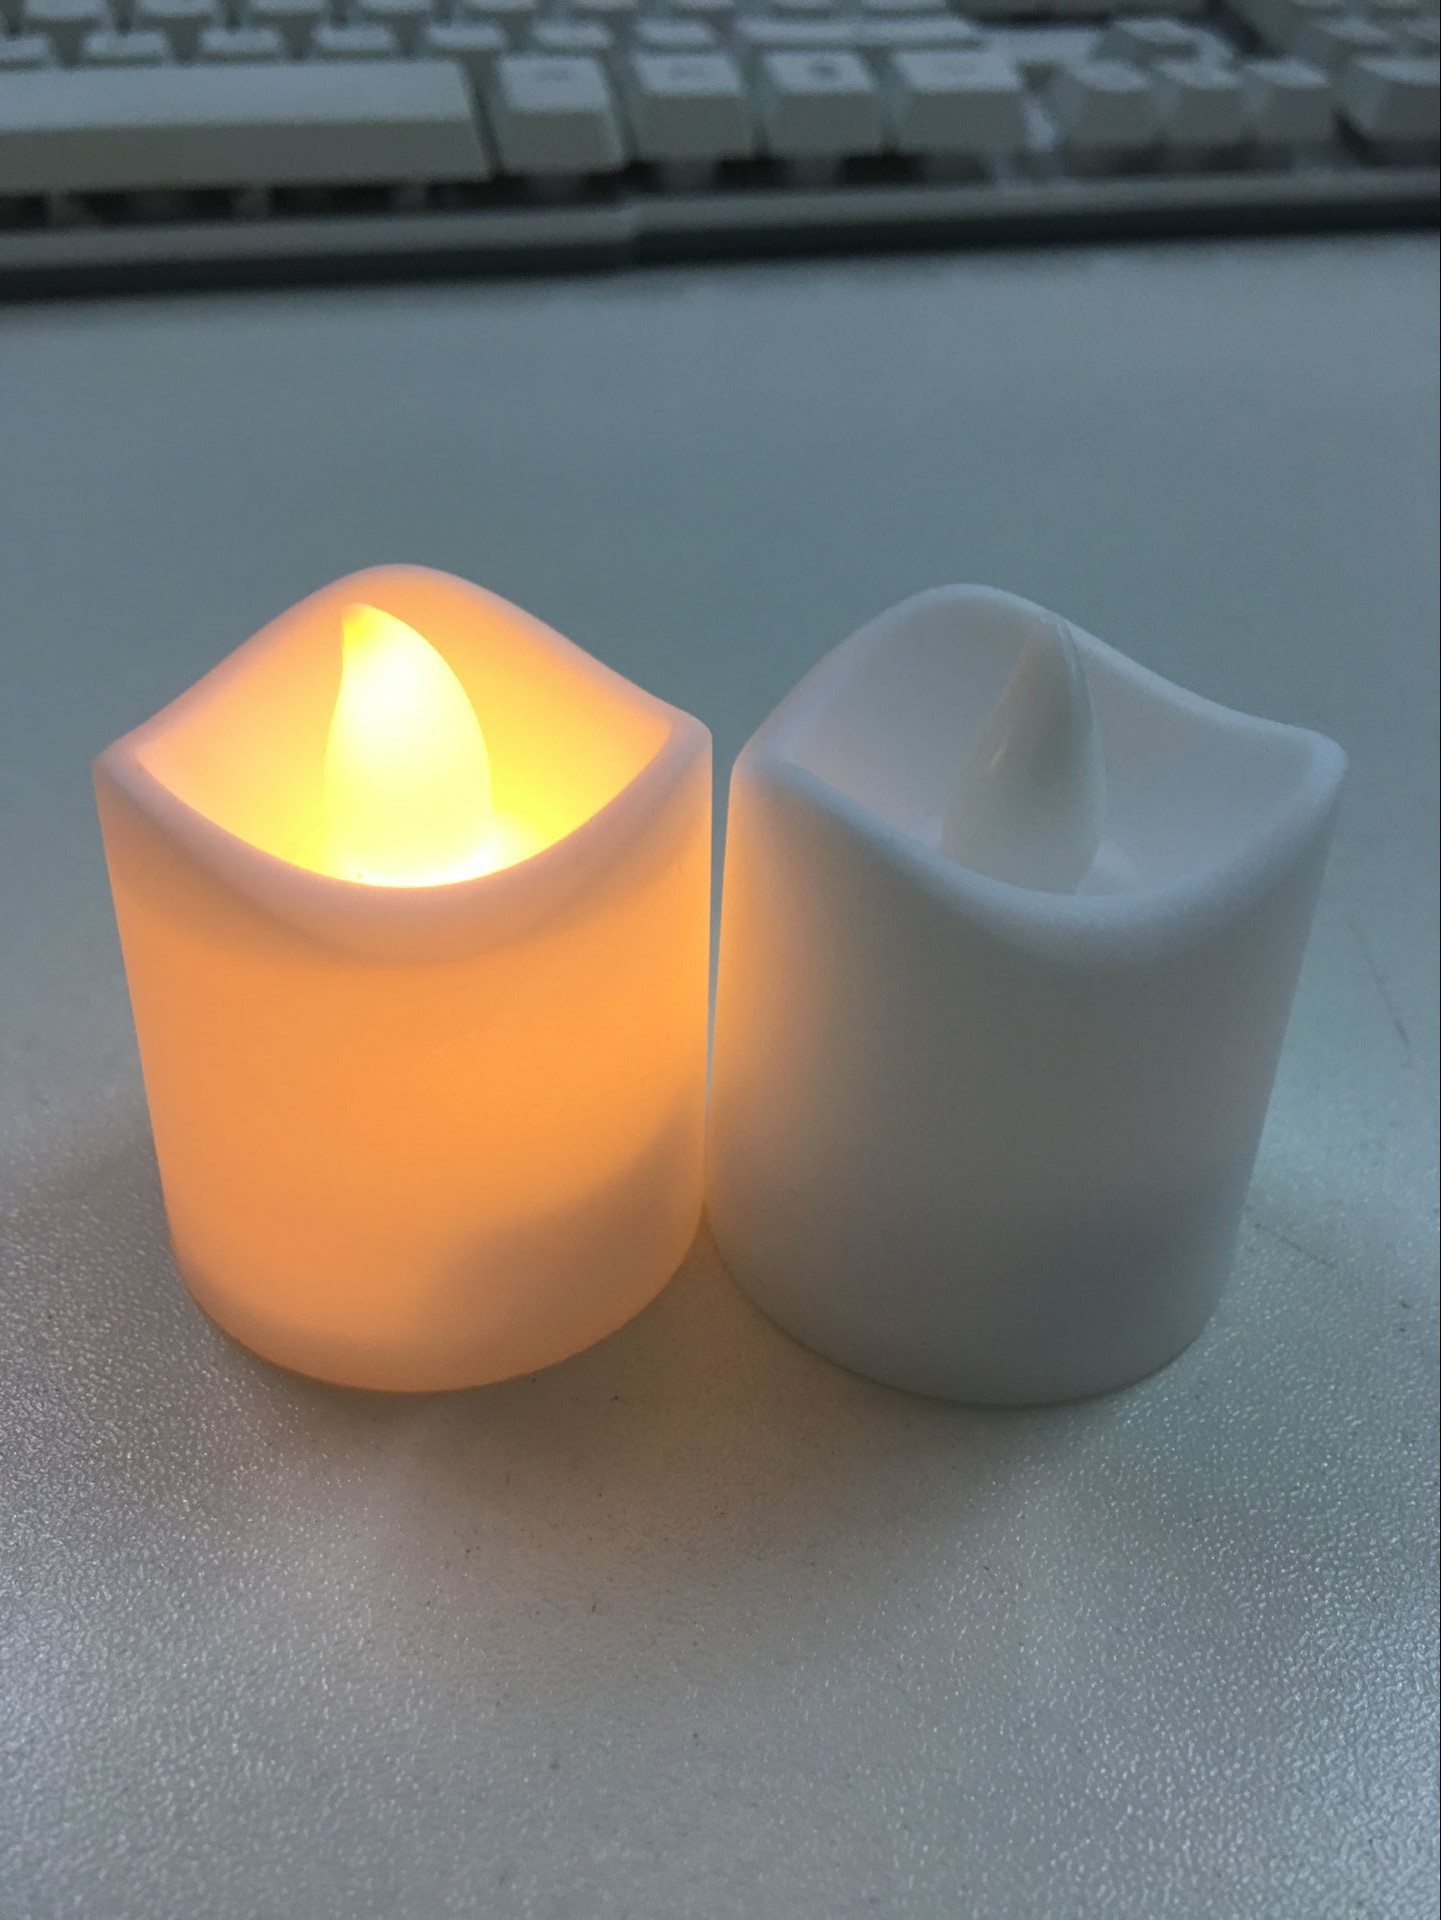 Flameless LED Lights Candles Wavy Edge Electronic Candles for Wedding Party Home Decoration black_4.5 * 4 * 4